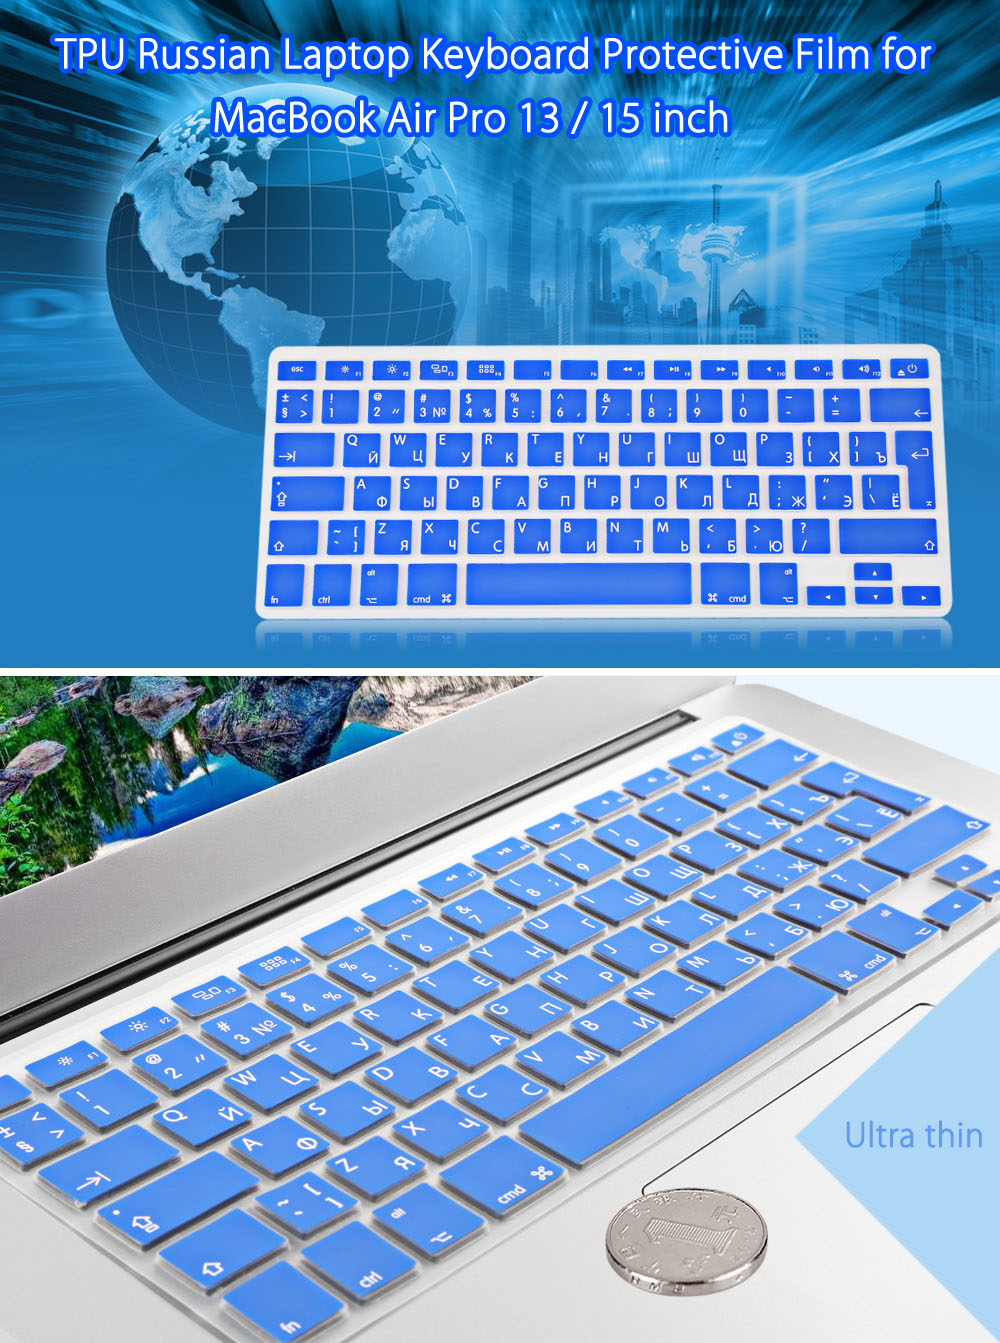 Water Resistant TPU Russian Laptop Keyboard Protective Film for MacBook Air Pro 13 / 15 inch